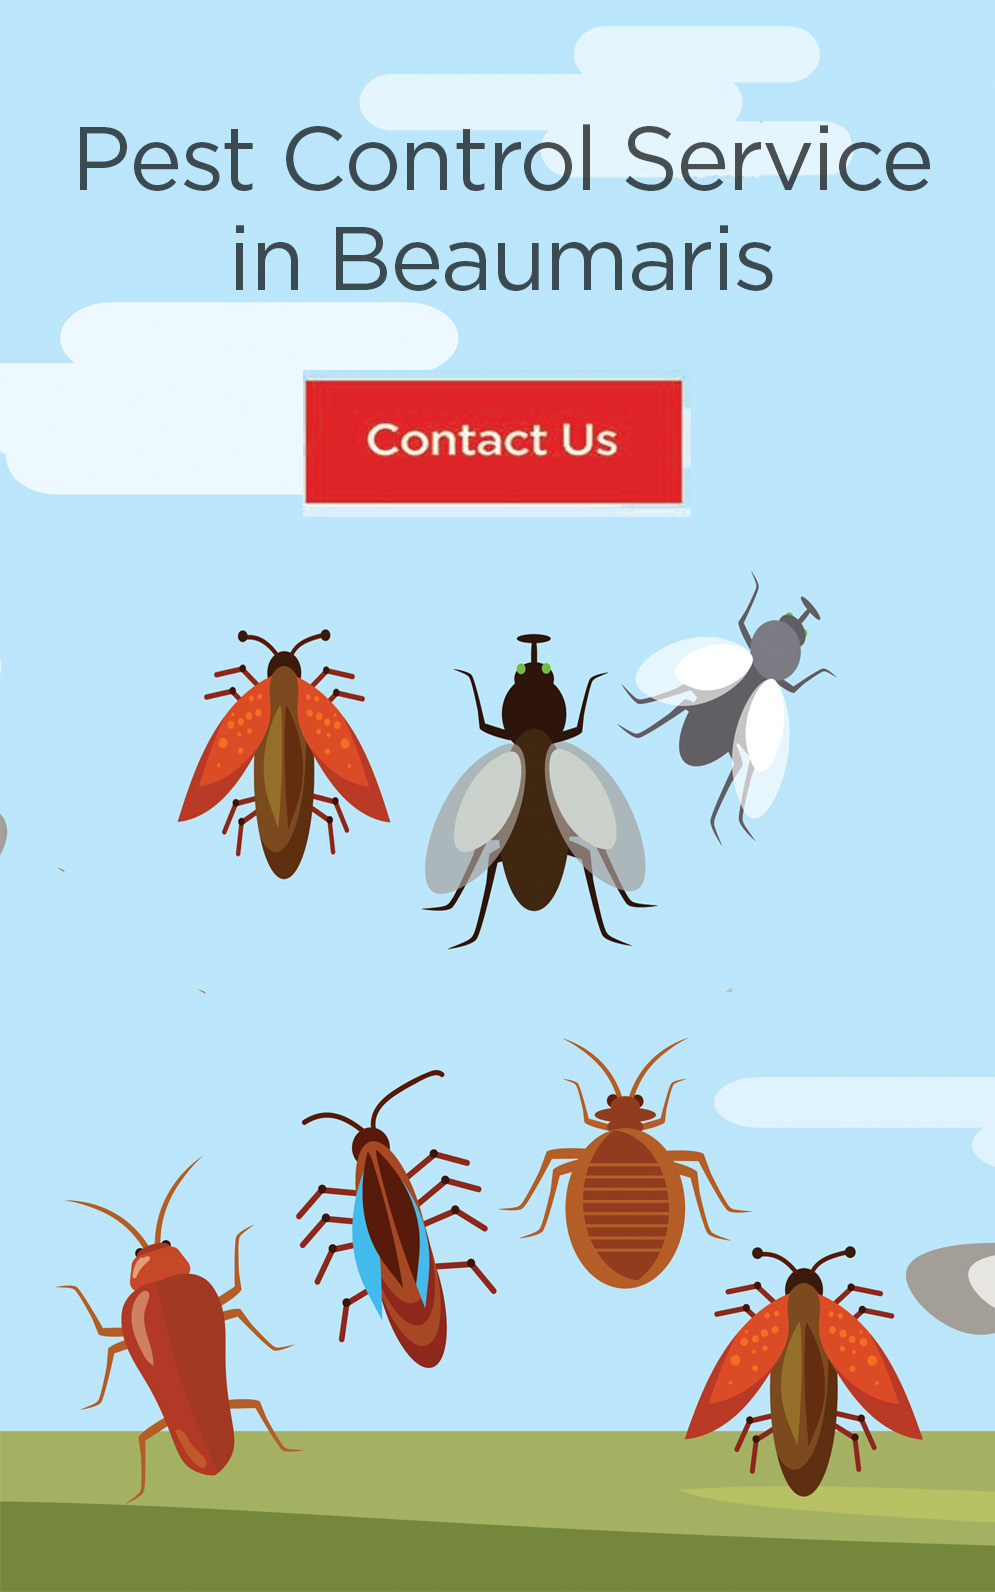 Pest & Termite Control Services beaumaris